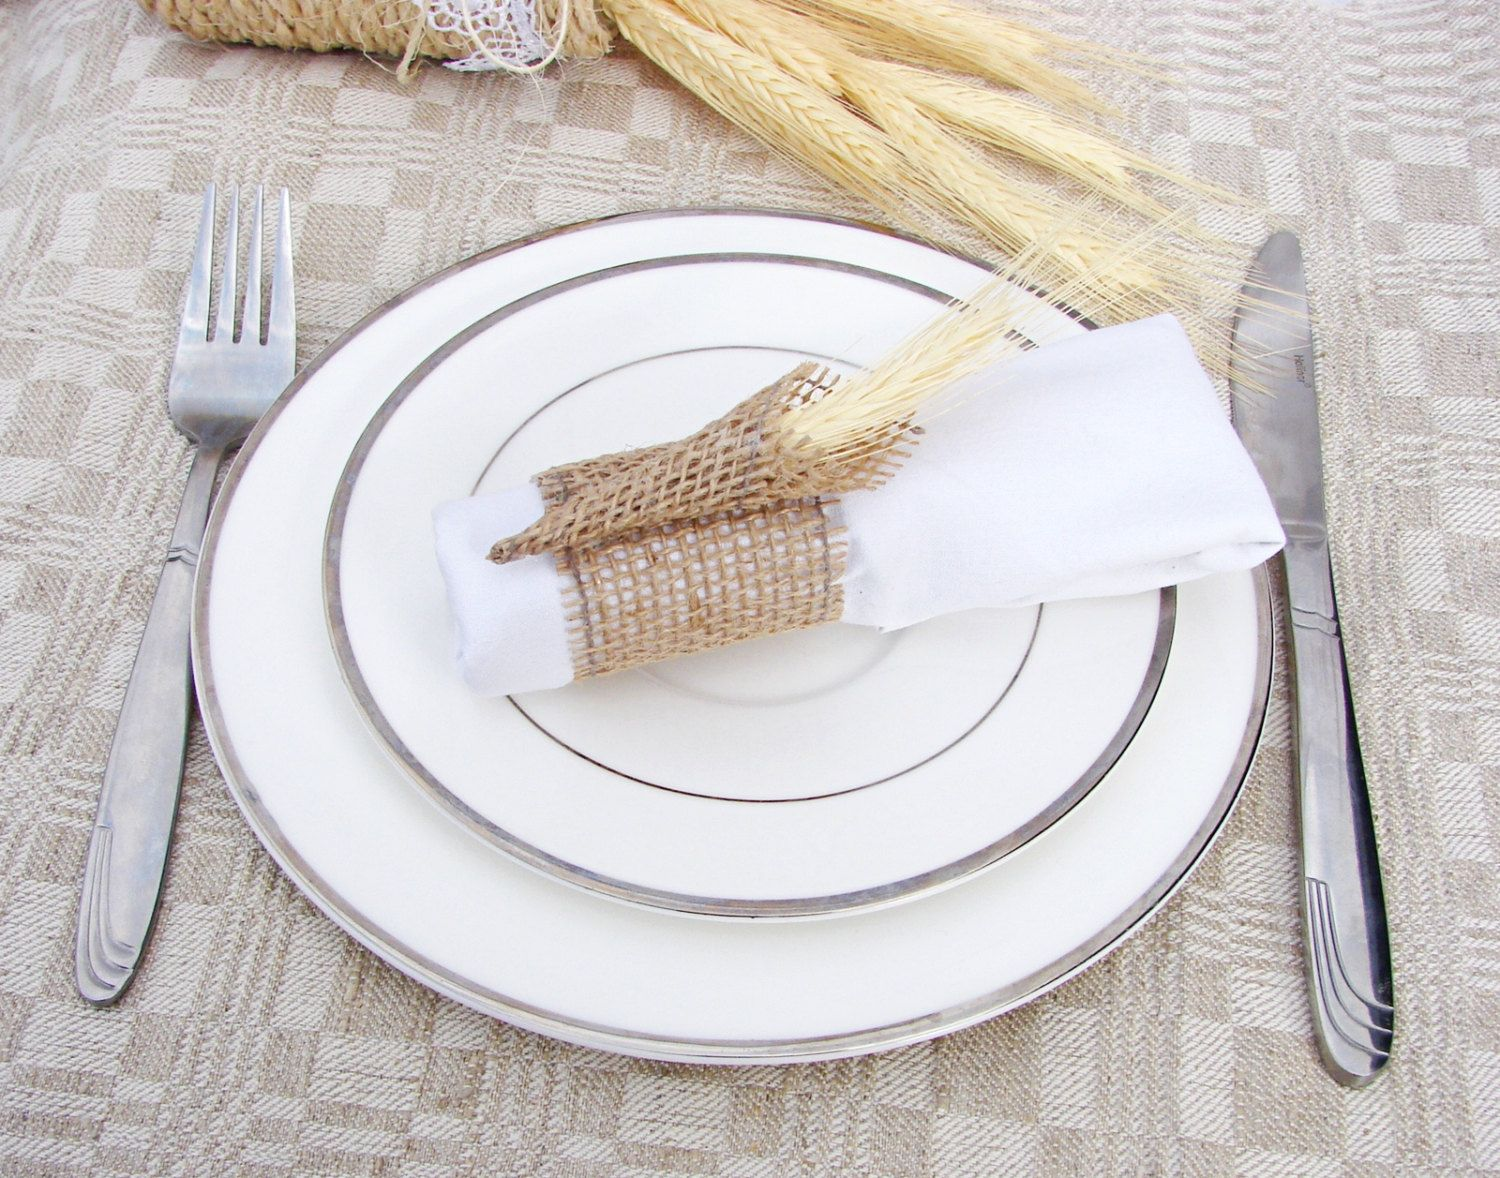 20 Burlap Napkin HolderWedding Napkin RingsRustic Wedding Decor